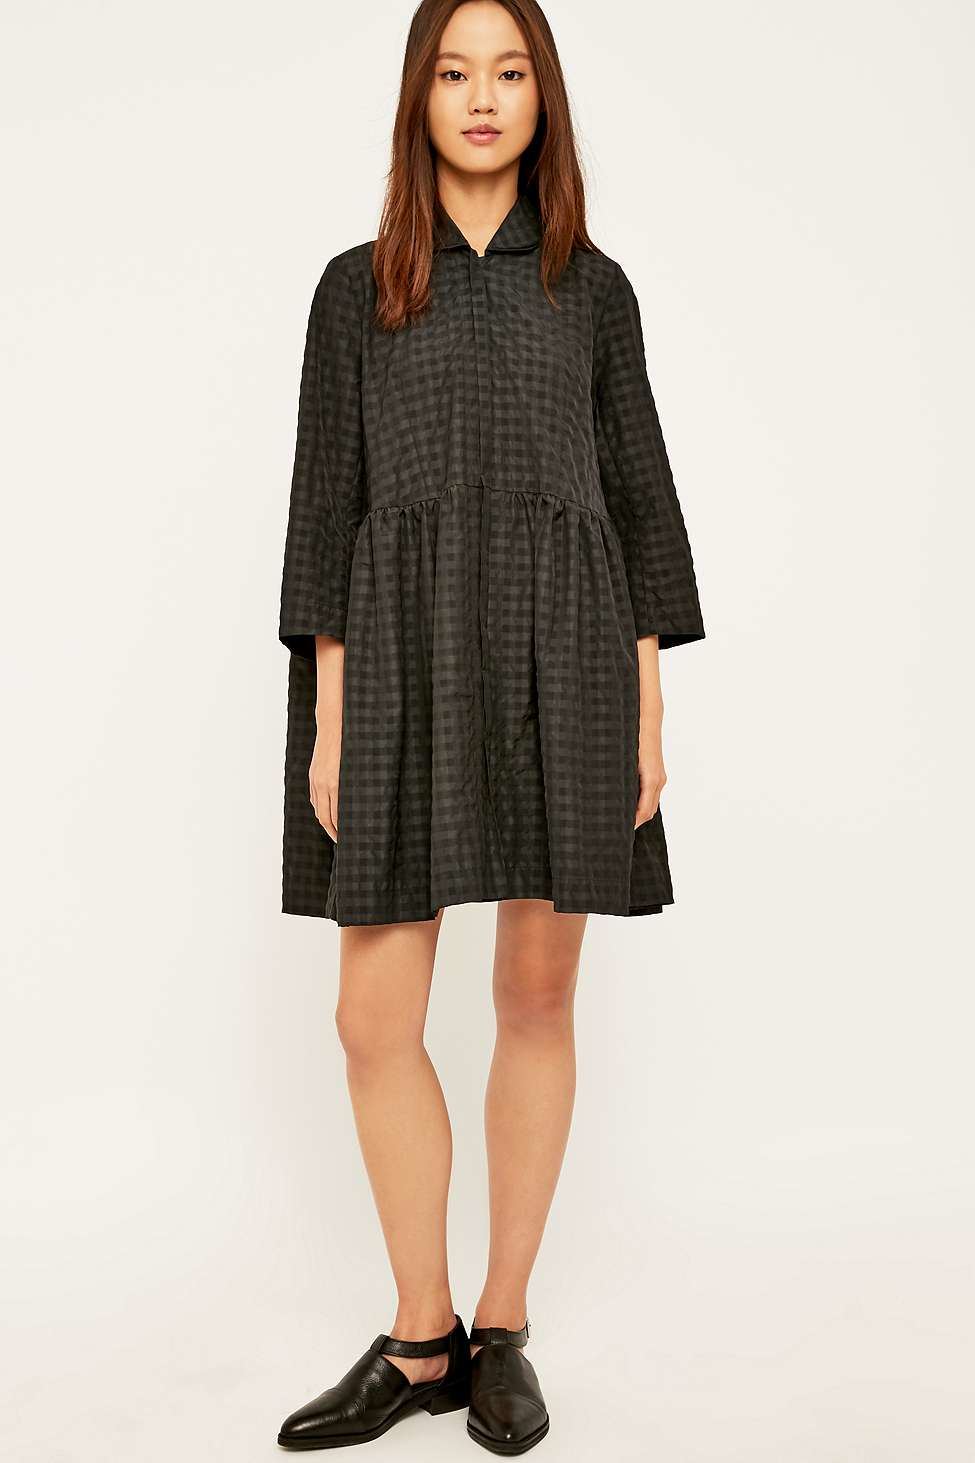 Where To Buy Womens Tie Front Smock Dress Peter Jensen Pictures Cheap Online nSyW3o